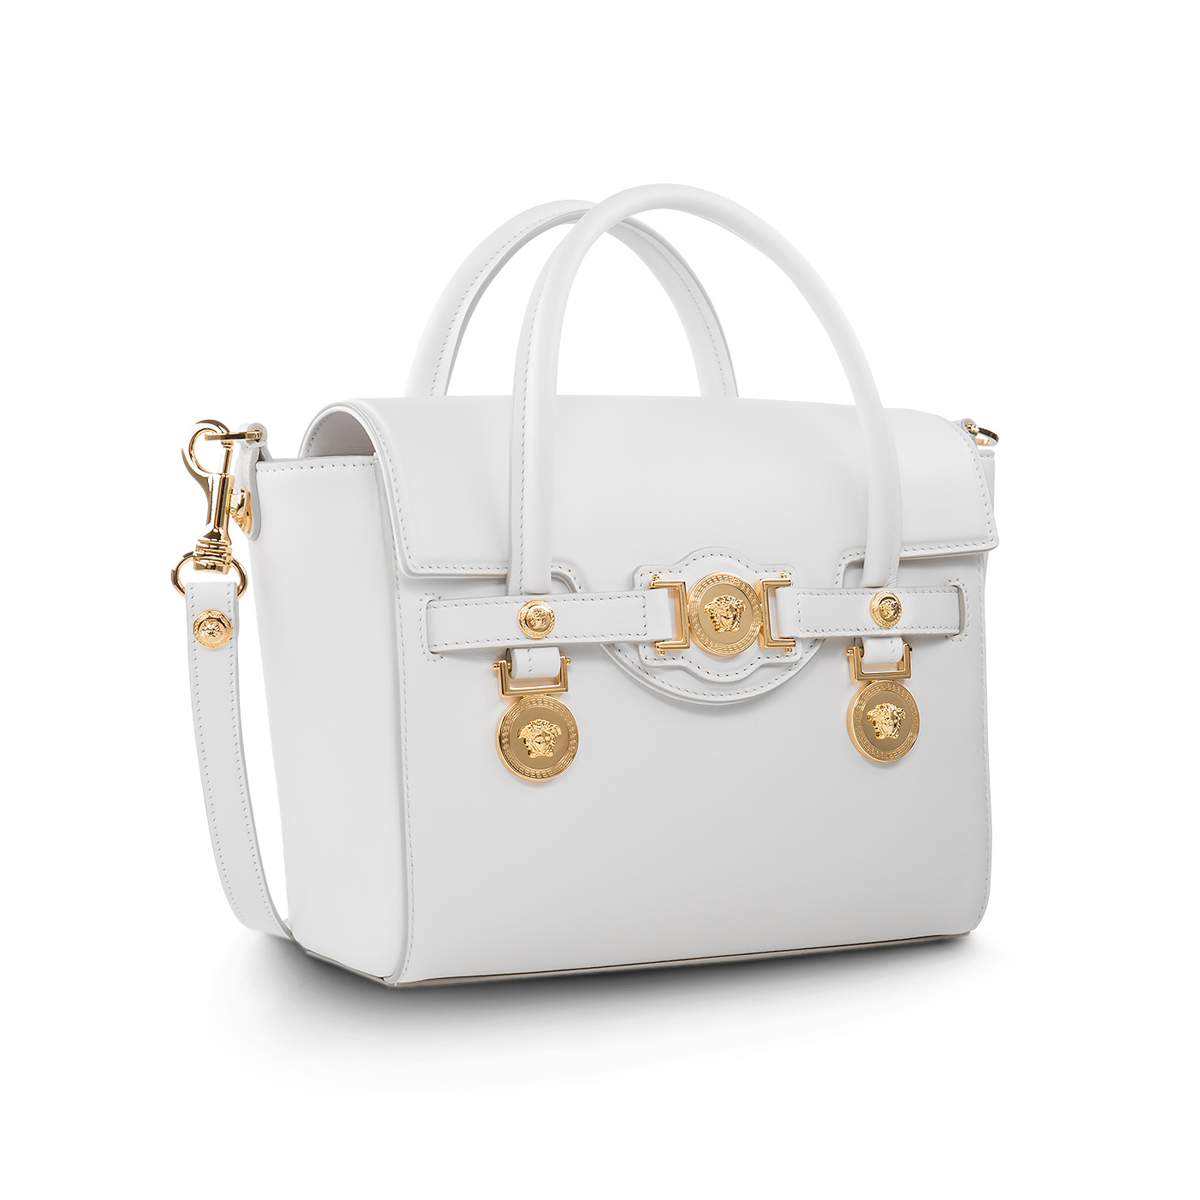 a864ac9fb8 Taking your from downtown to uptown -  Versace white Small Signature bag  with gold hardware. Discover more about the  VersaceSignatureBag on versace .com